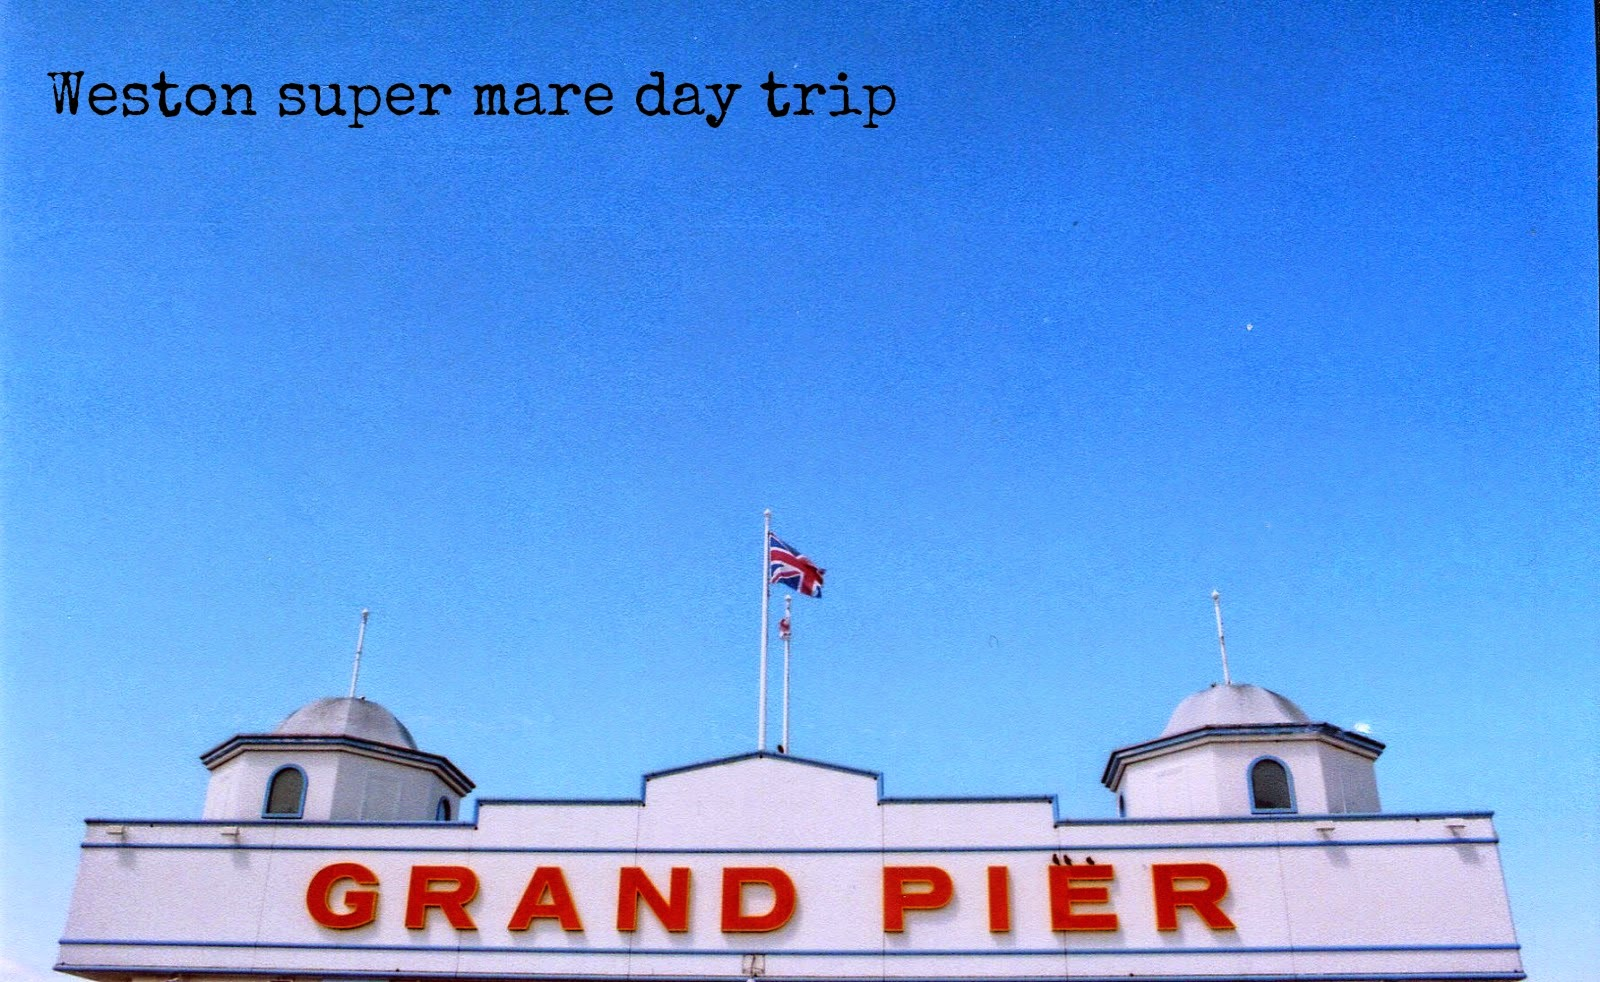 http://talesonfilm.blogspot.co.uk/2014/07/weston-super-mare-day-trip.html